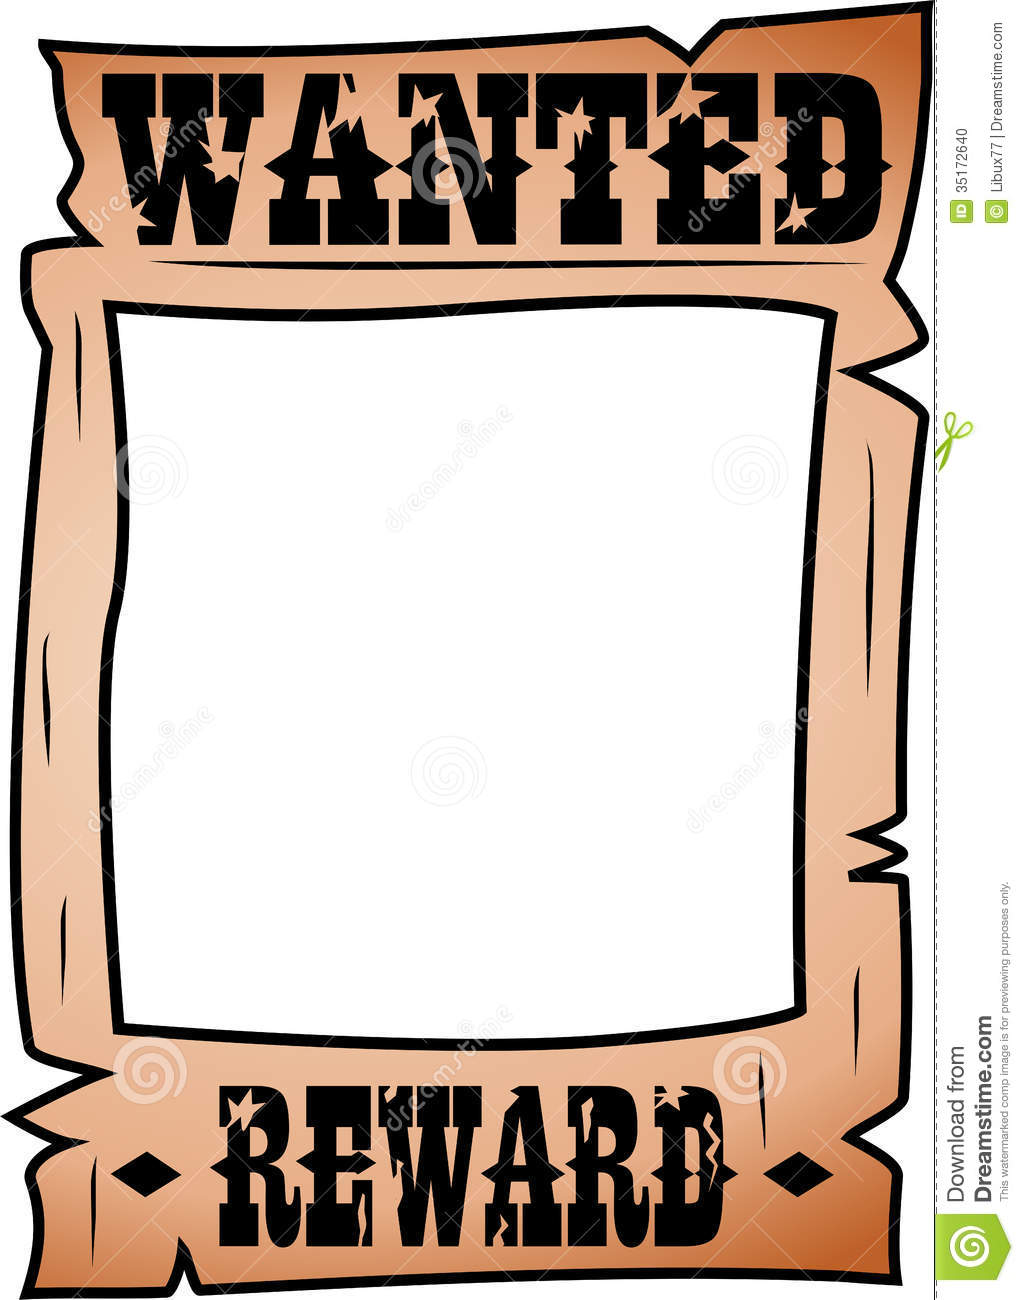 Wanted Poster Clipart Wanted Illustrations And Clipart